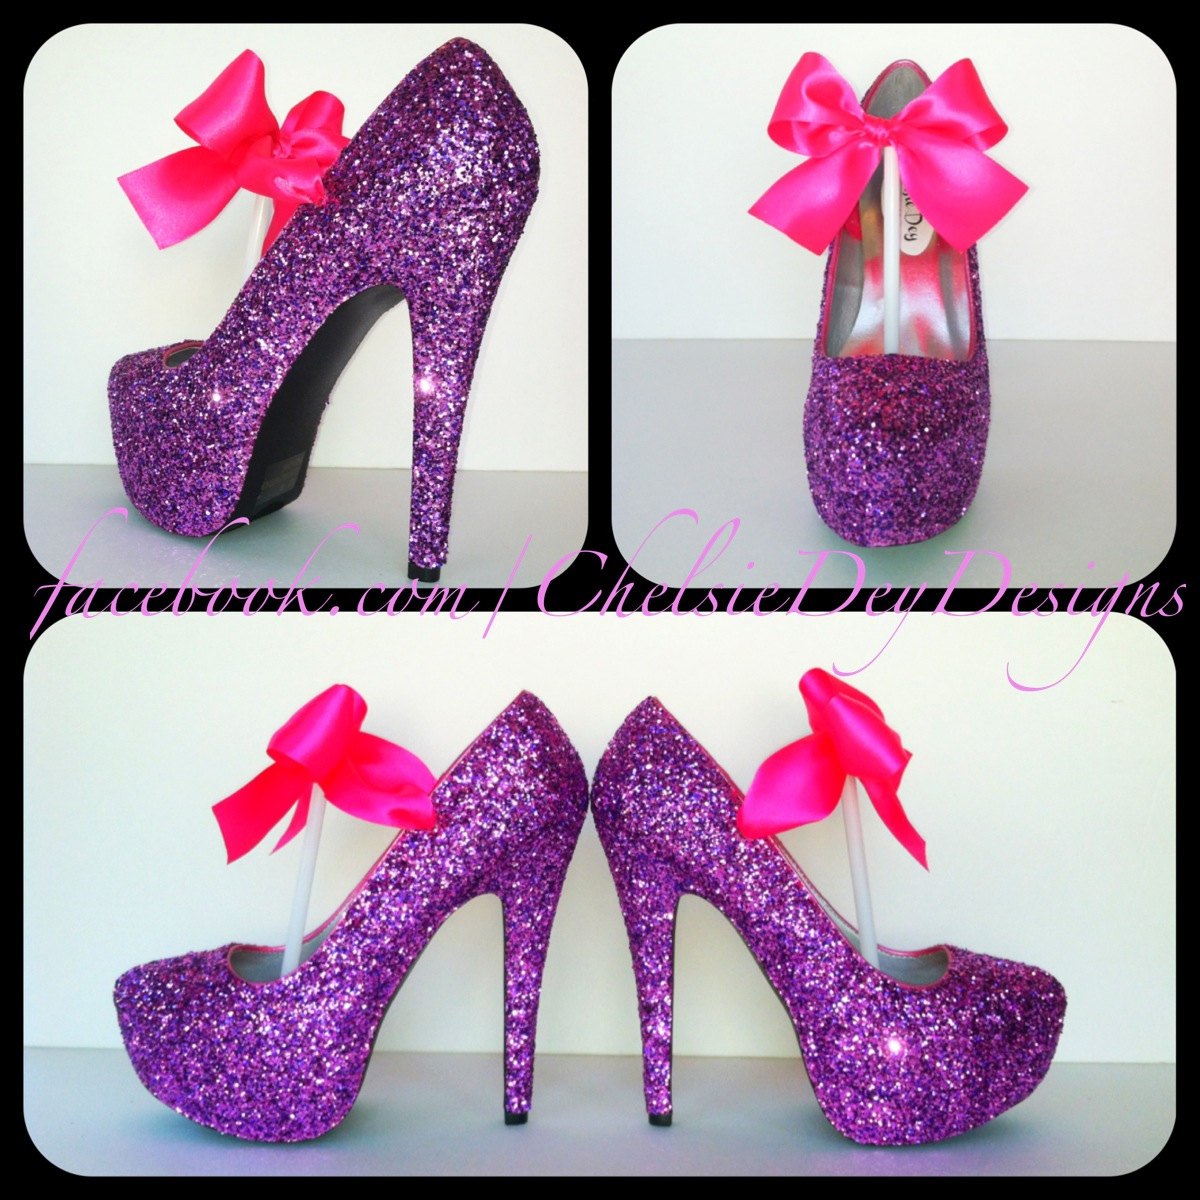 f7b210531c37 Glitter High Heels - Pink Purple Pumps - Barbie Platform Shoes - Glitzy  Sparkly Bridal Heels